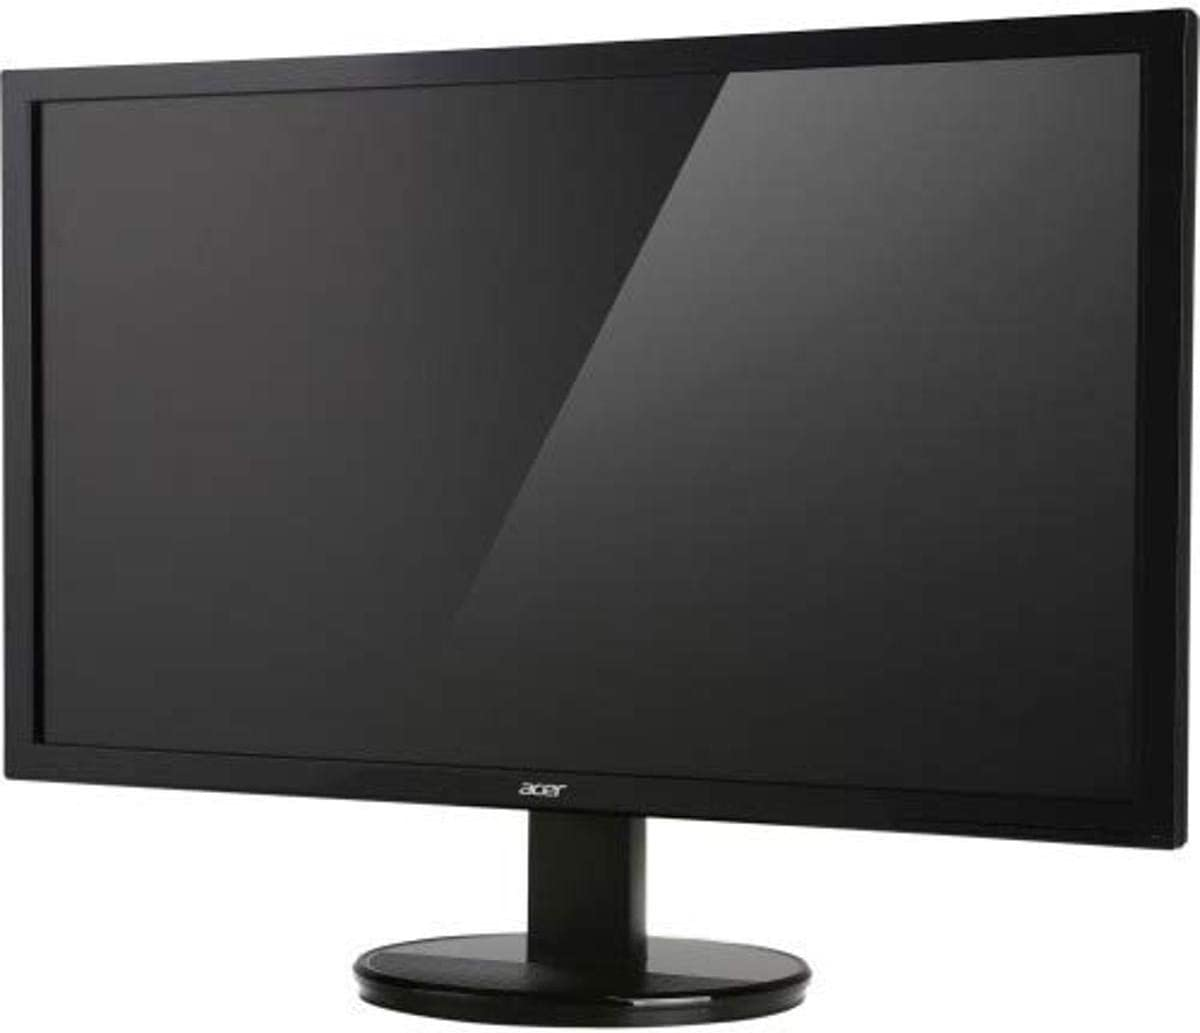 Acer 24 1920x1080 w/Speakers, Black